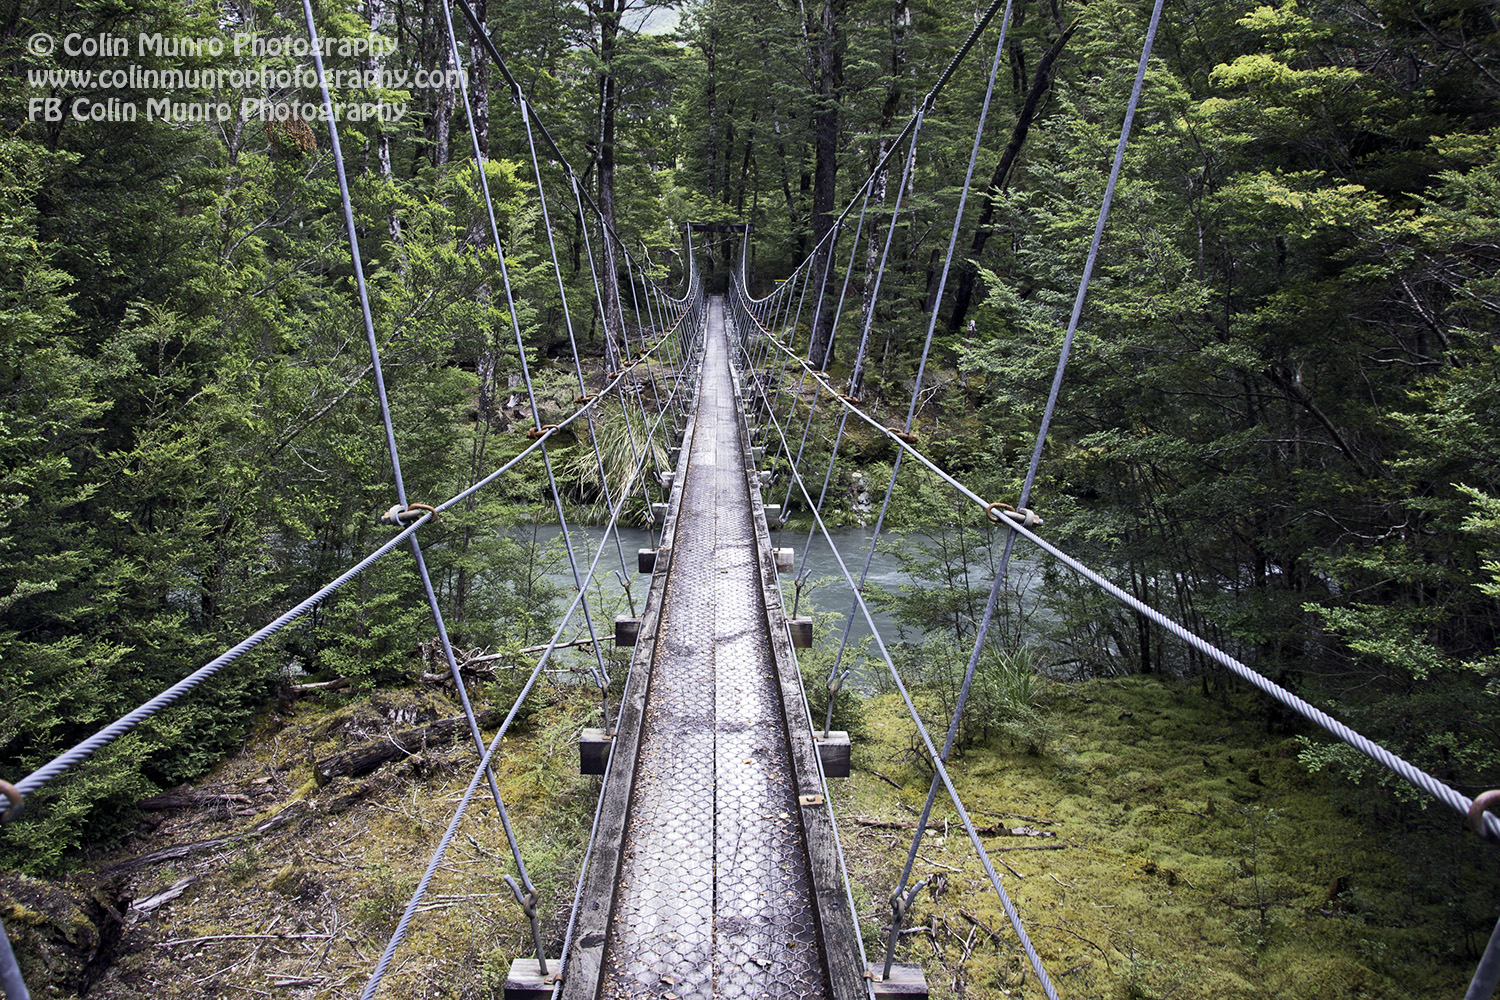 A couple of suspension bridge (swing bridge in NZ) must be crossed before the track enters Mount Aspiring National Park . Rees Dart Track, New Zealand. copyright Colin Munro Photography